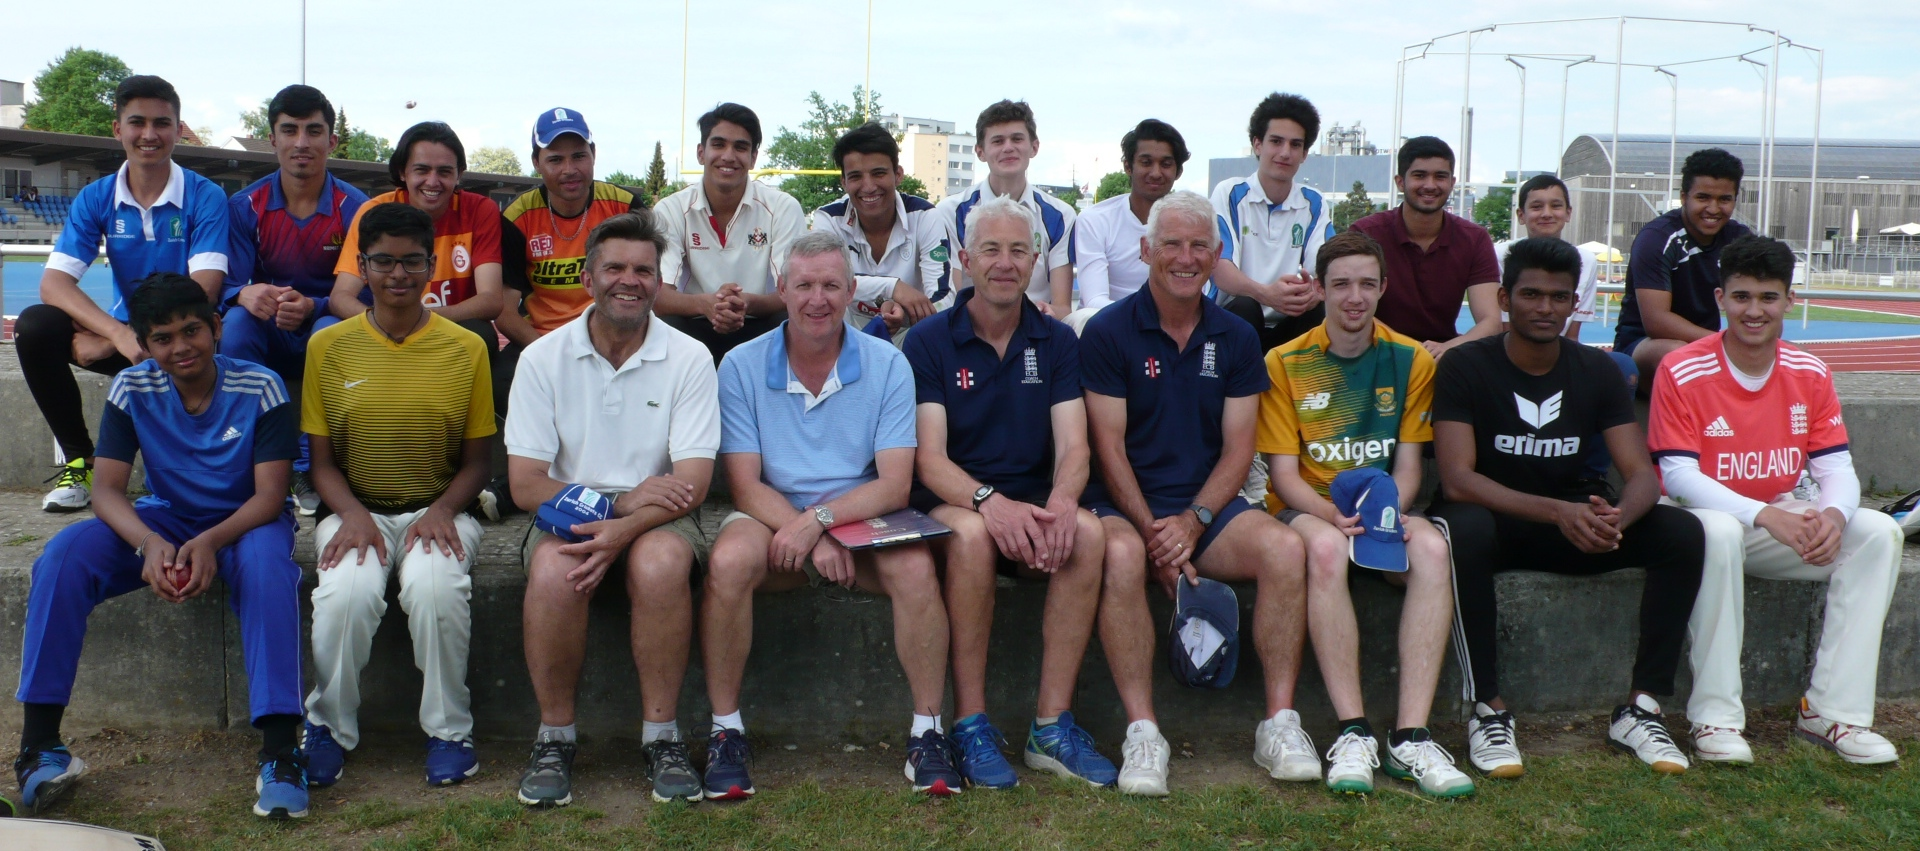 Hampshire camp with the older players in 2018